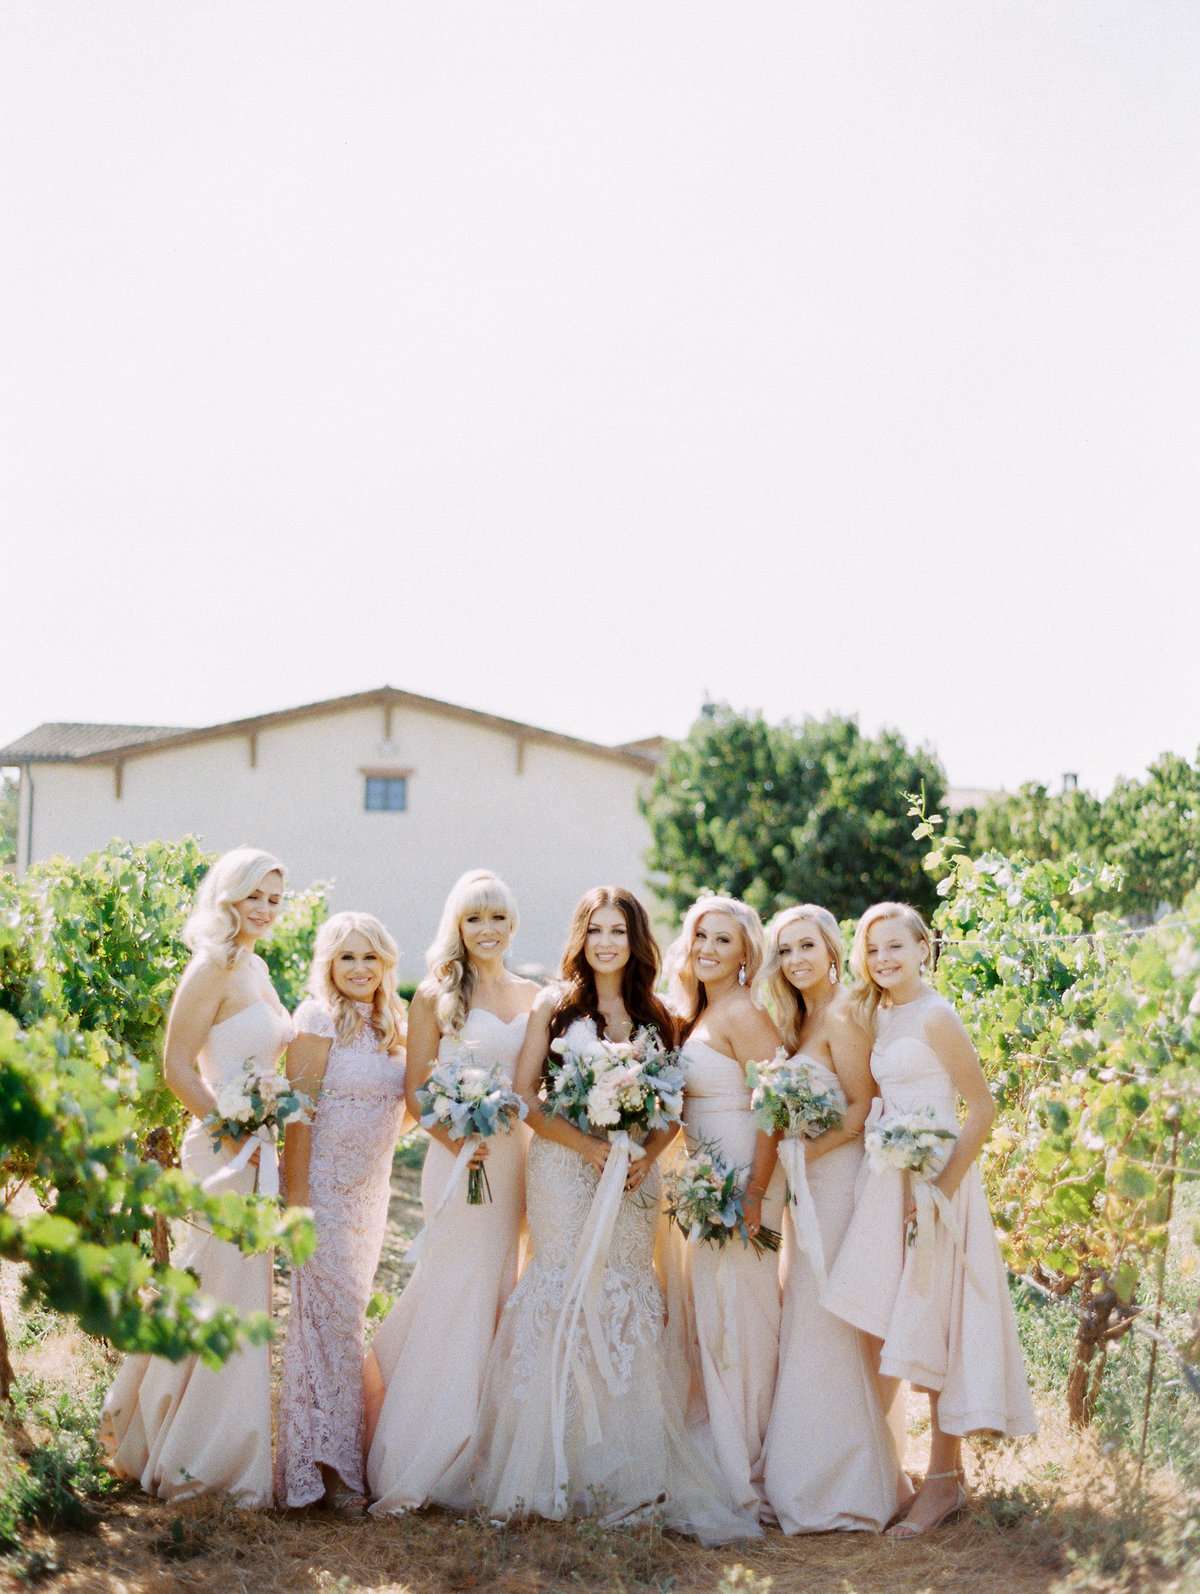 Natalie Bray Studios, Natalie Bray Photography, Southern California Wedding Photographer, Fine Art wedding, Destination Wedding Photographer, Sonoma Wedding Photographer-16